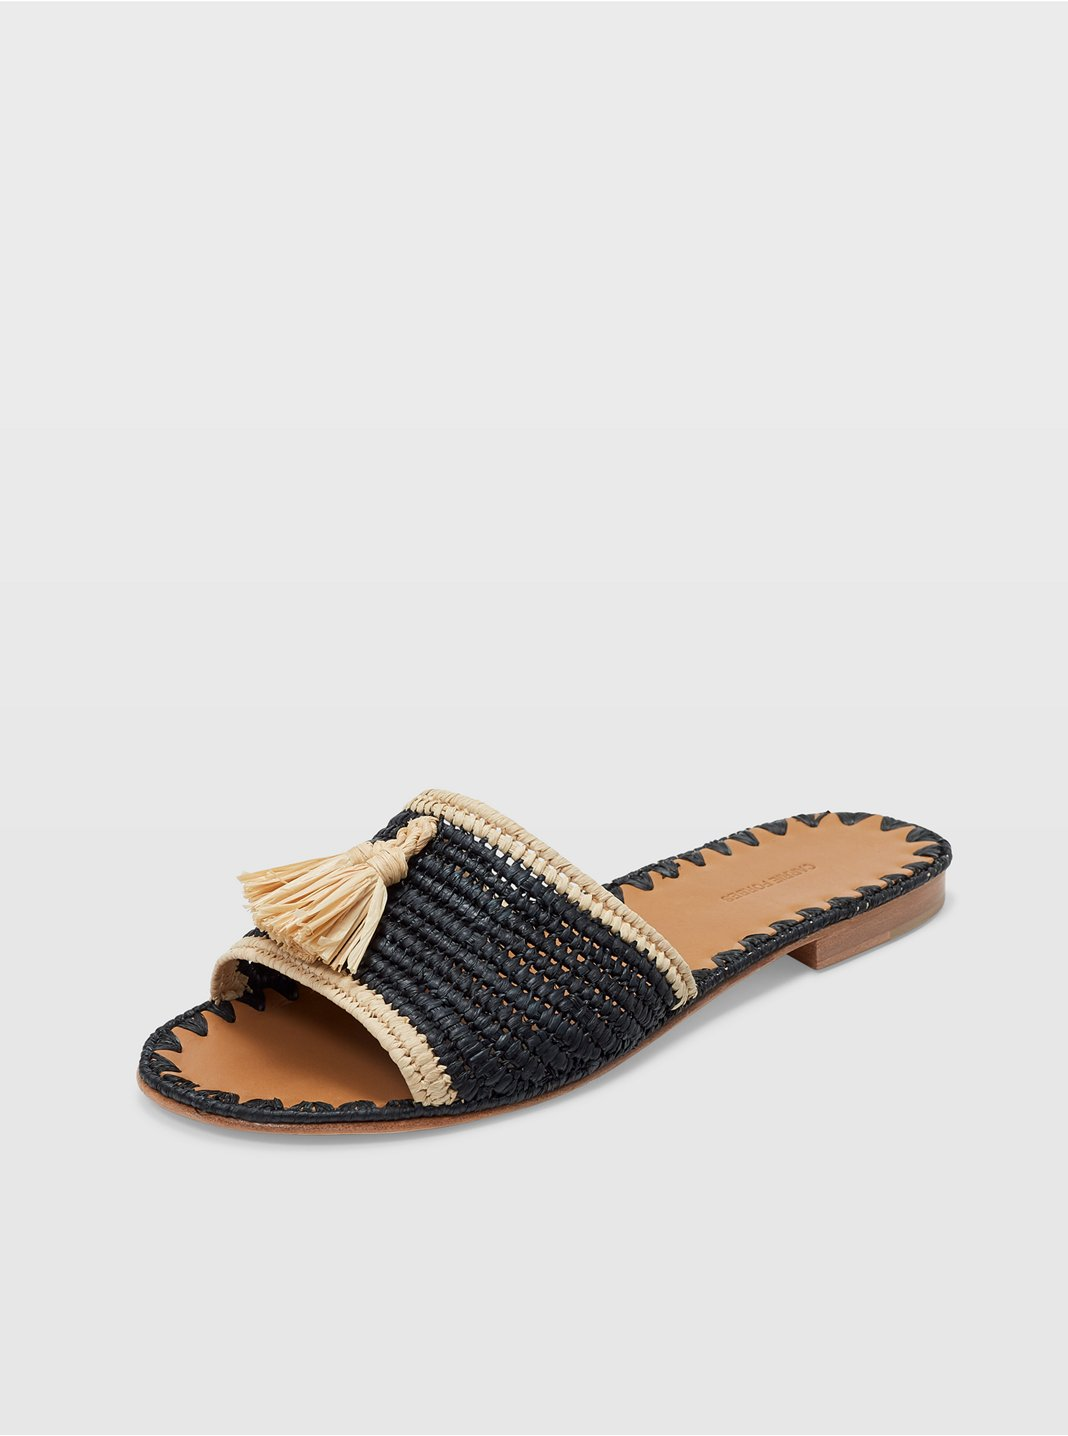 Carrie Forbes Adam Sandal